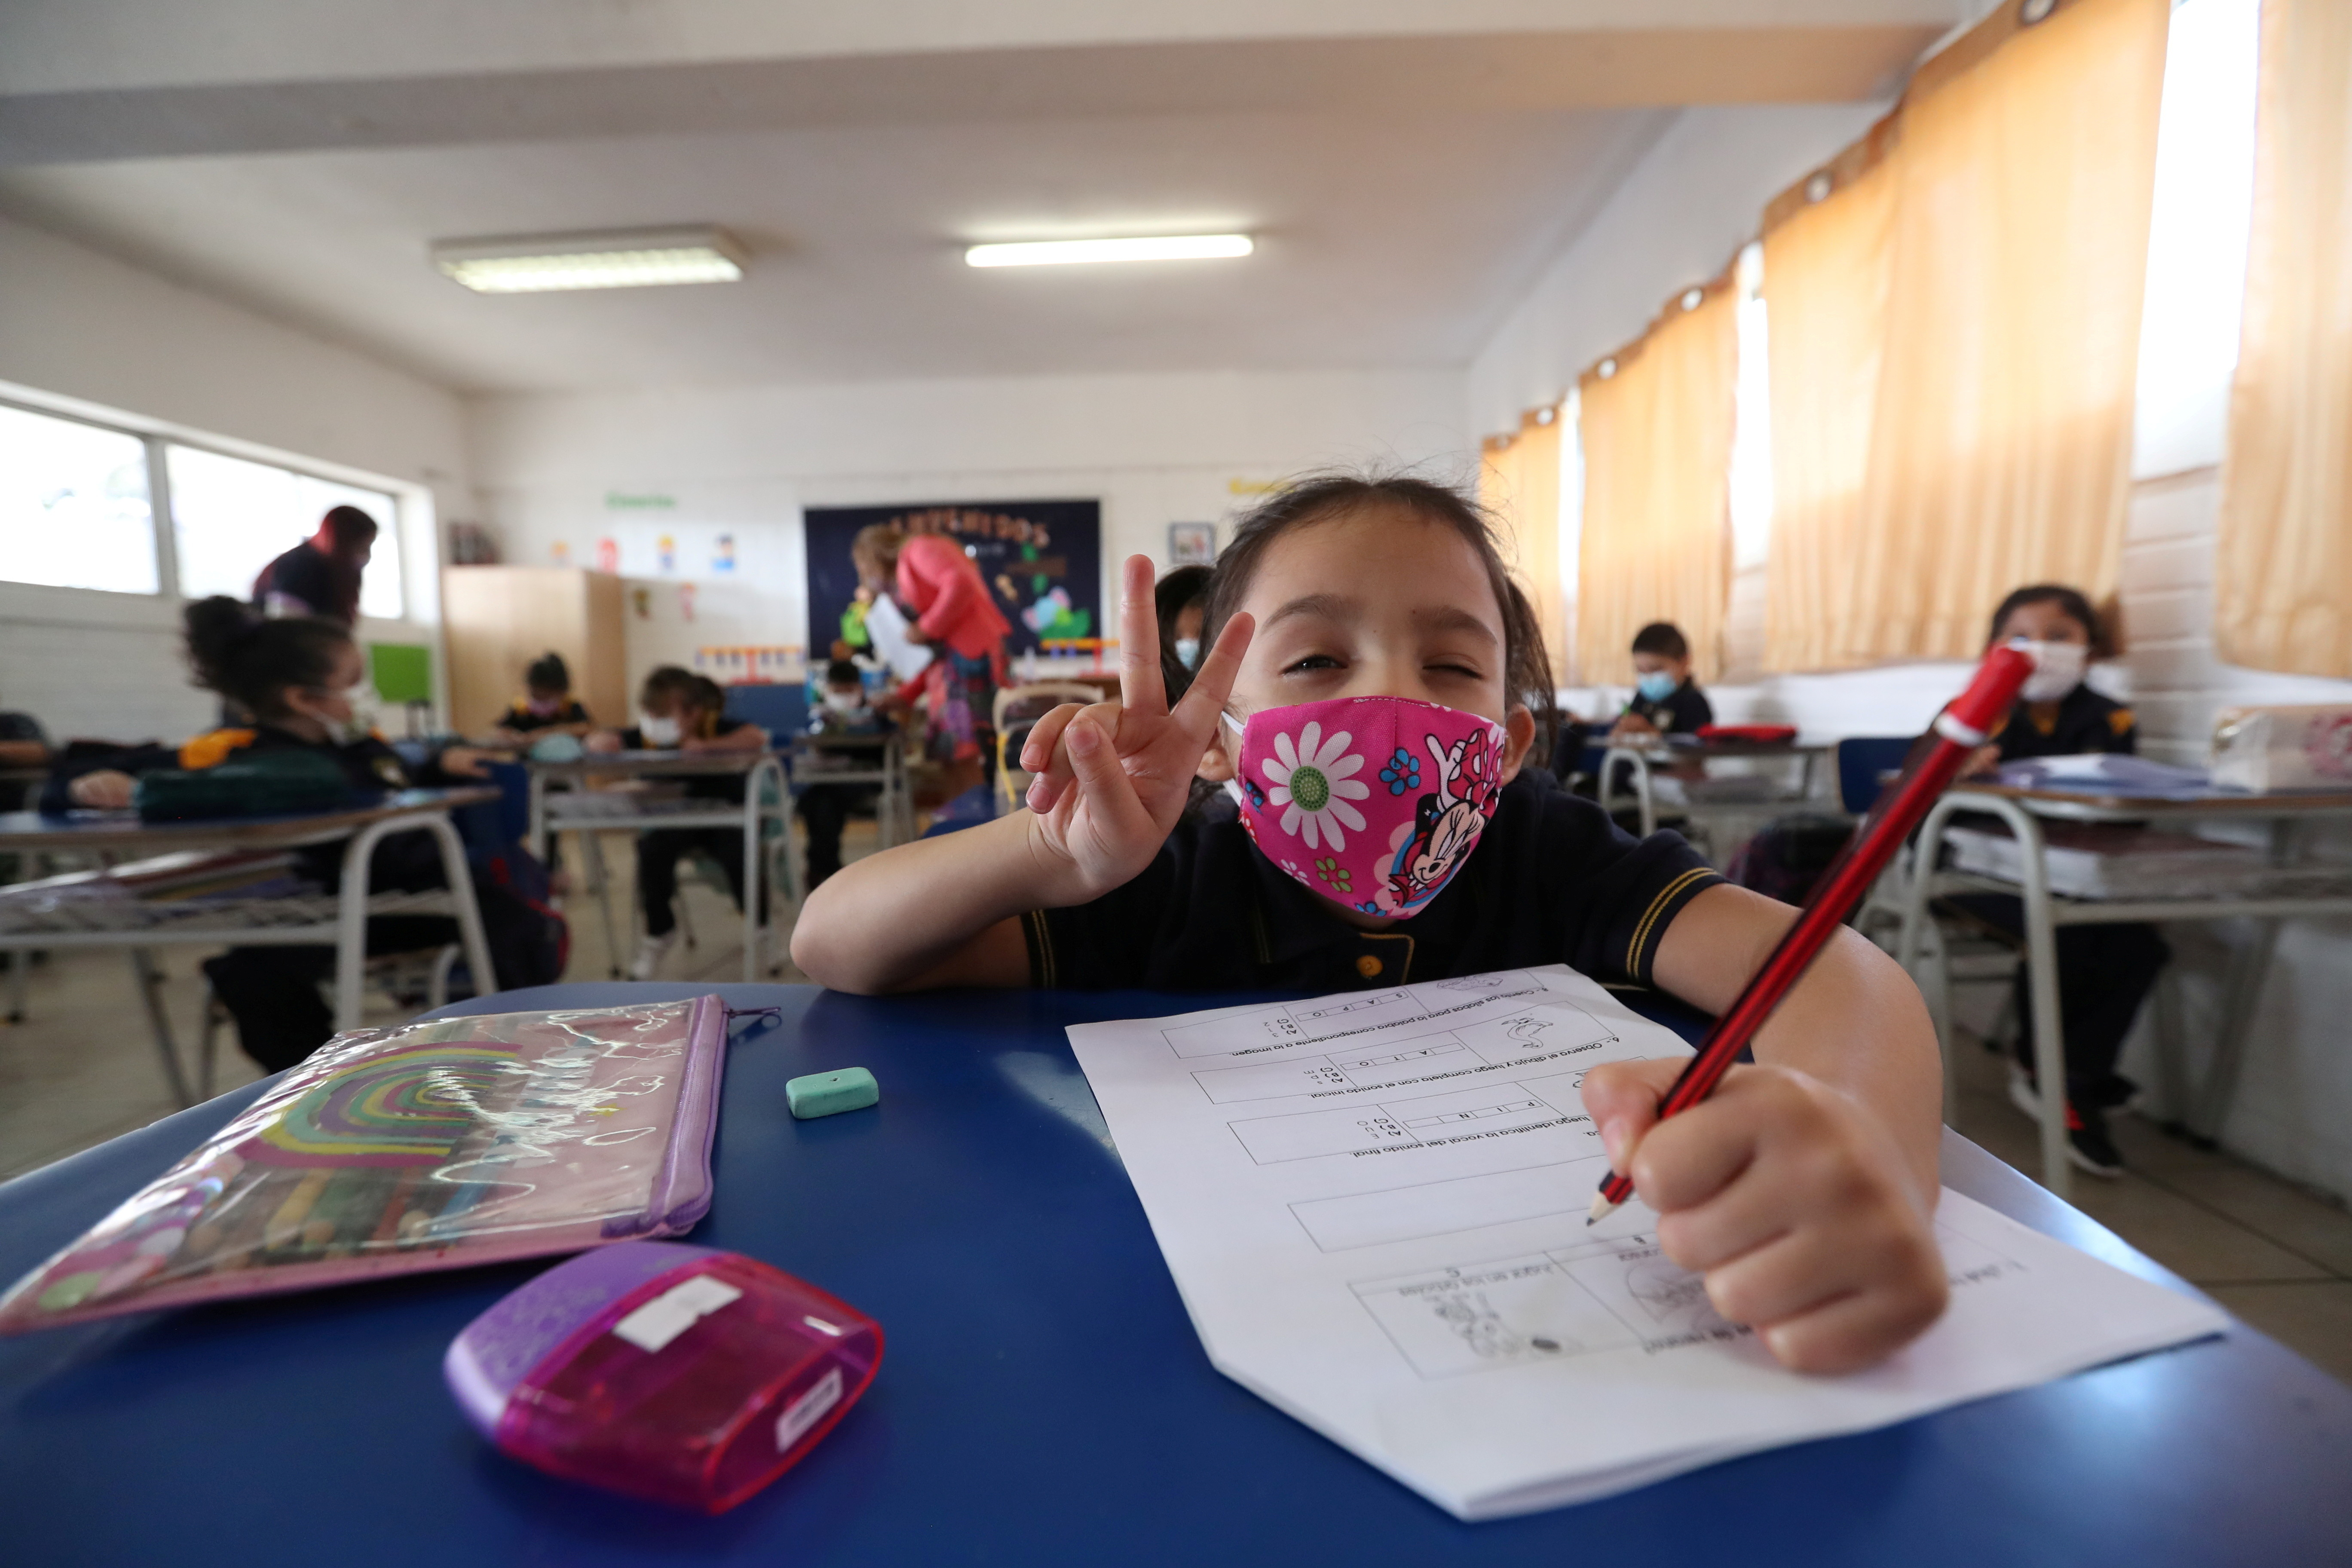 A student gestures with a face mask on in a classroom at a primary school.